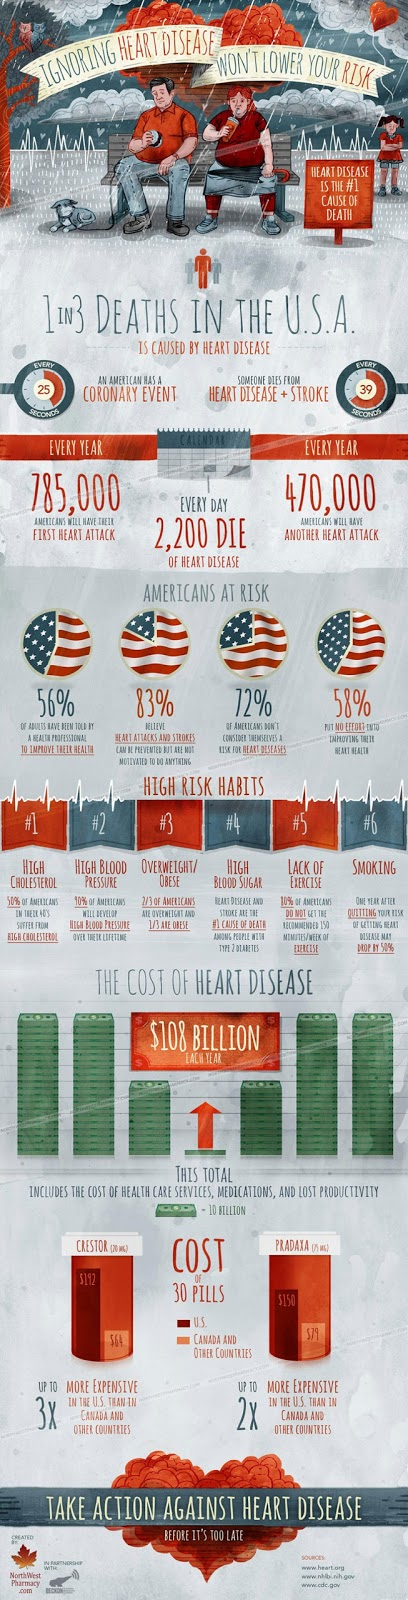 Motivation Today: Heart Disease Infographic